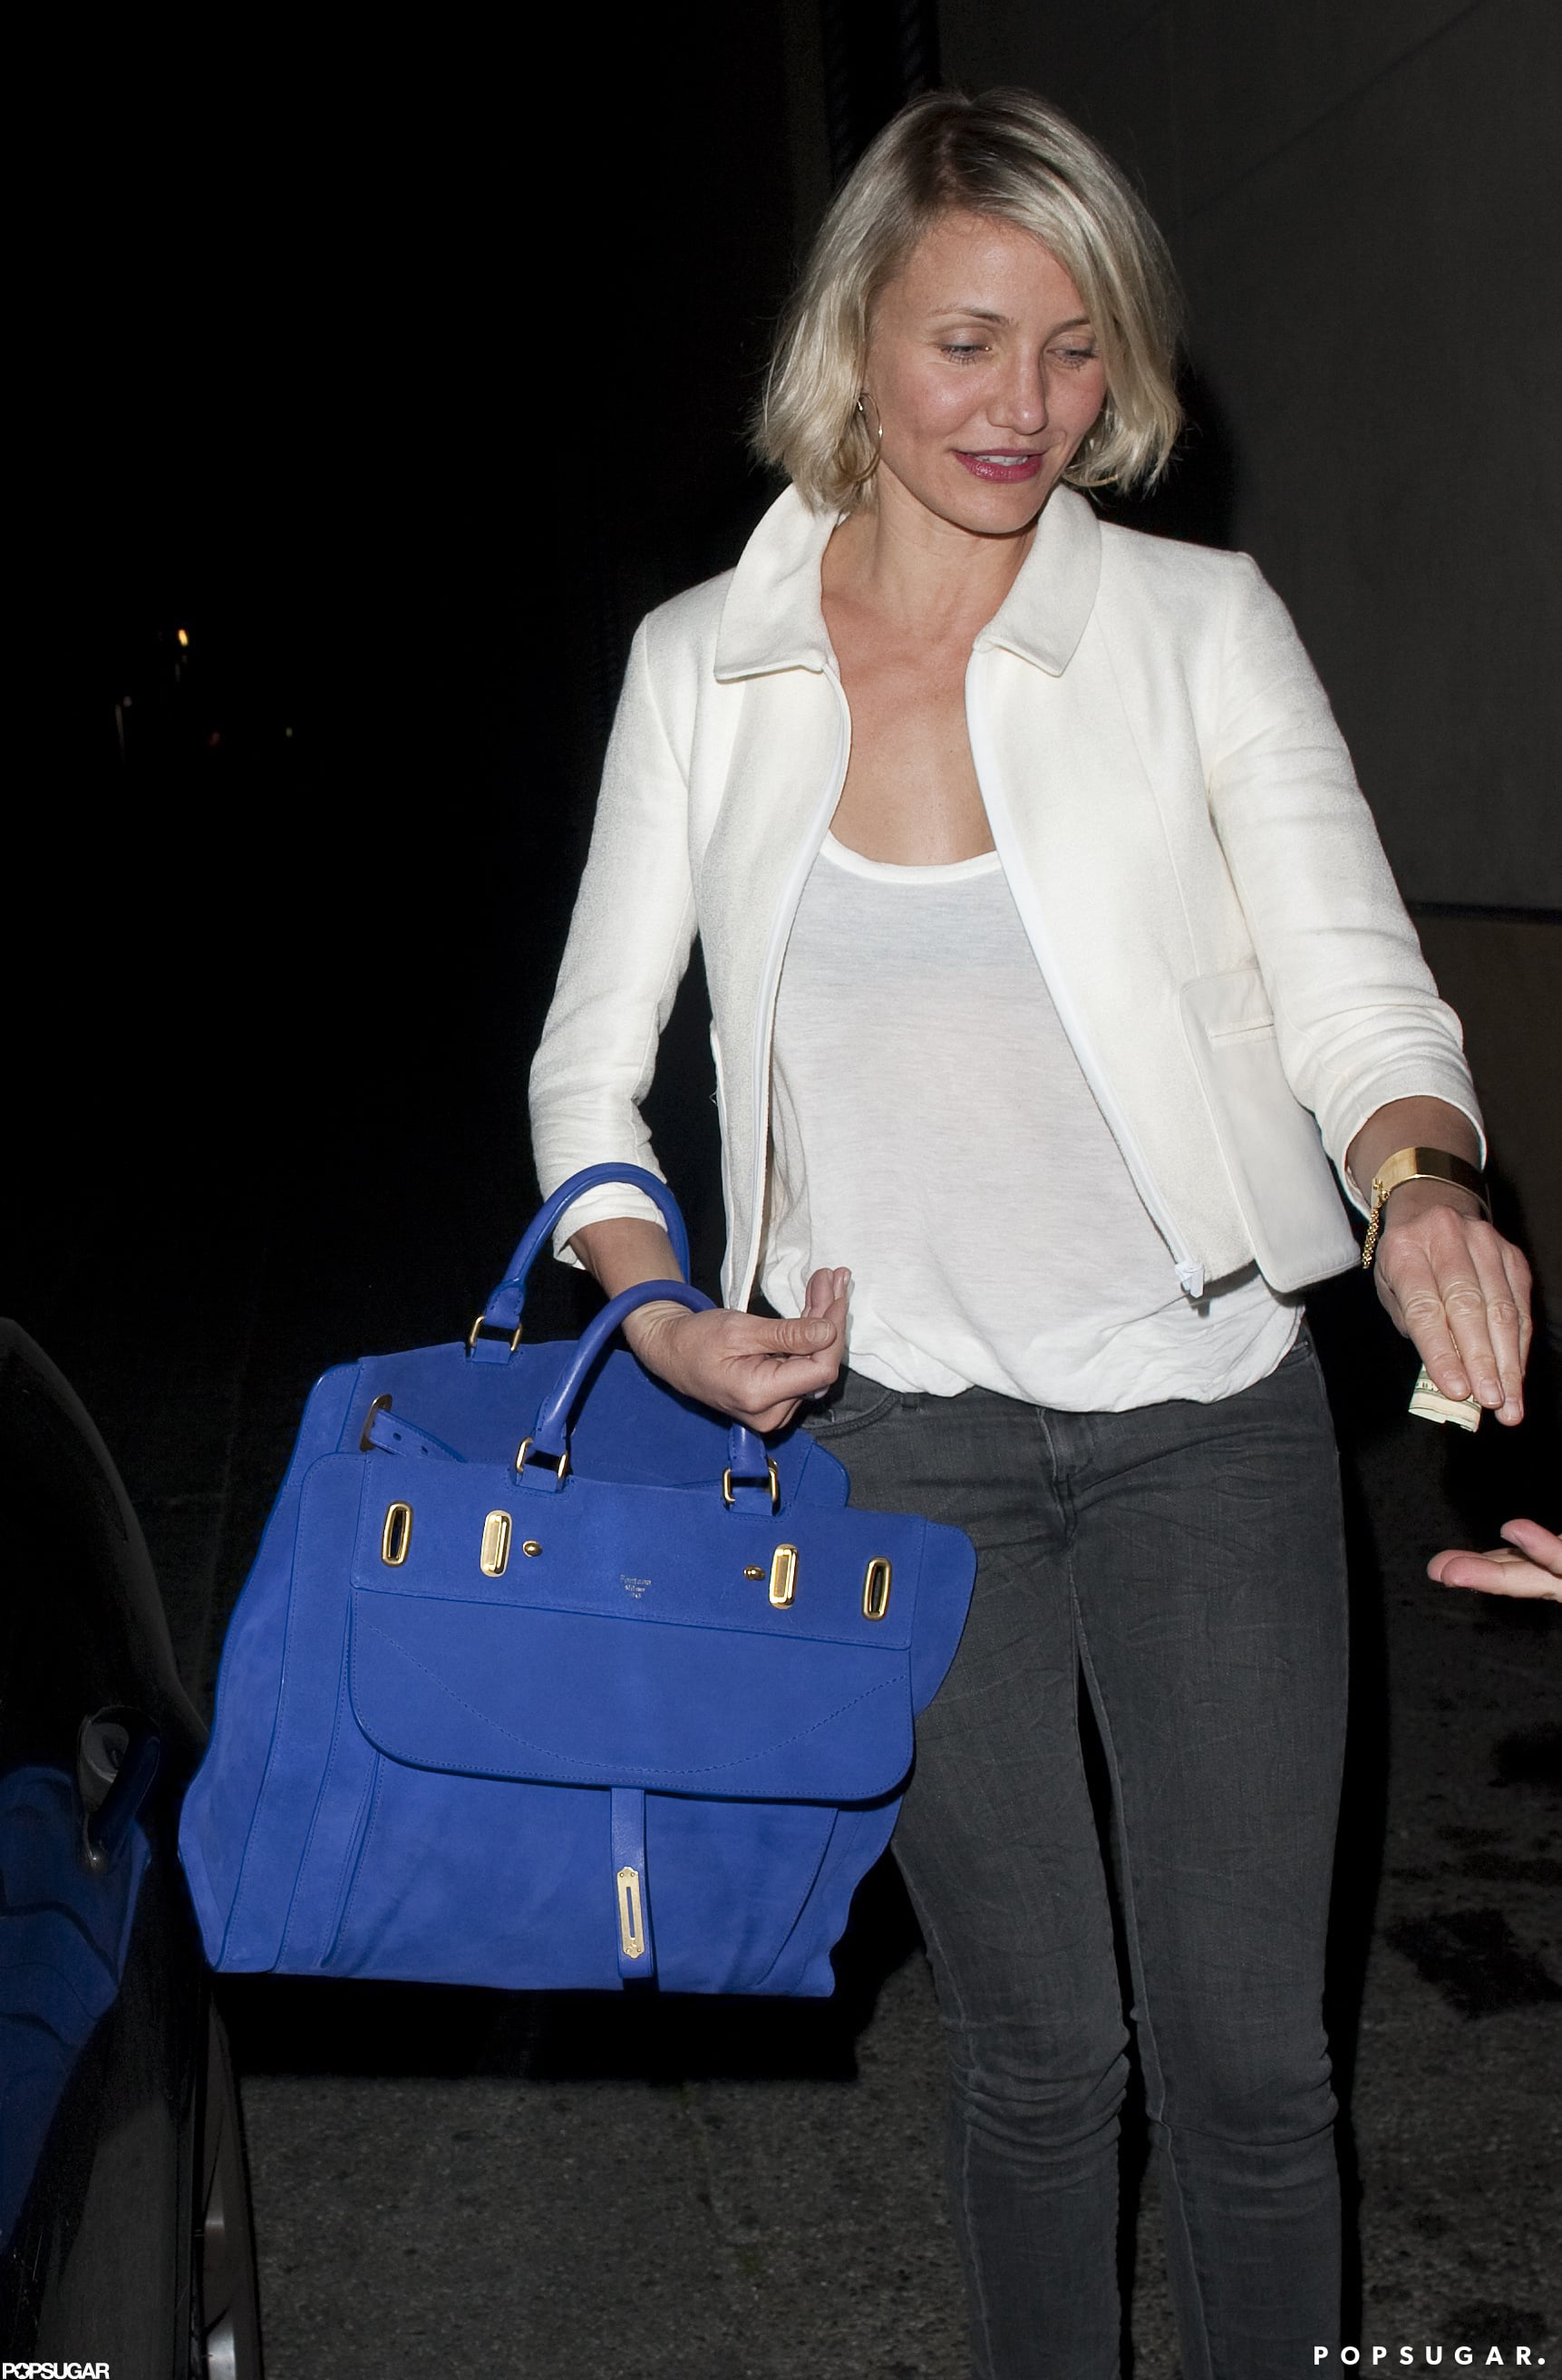 Cameron Diaz hopped in the driver's seat.